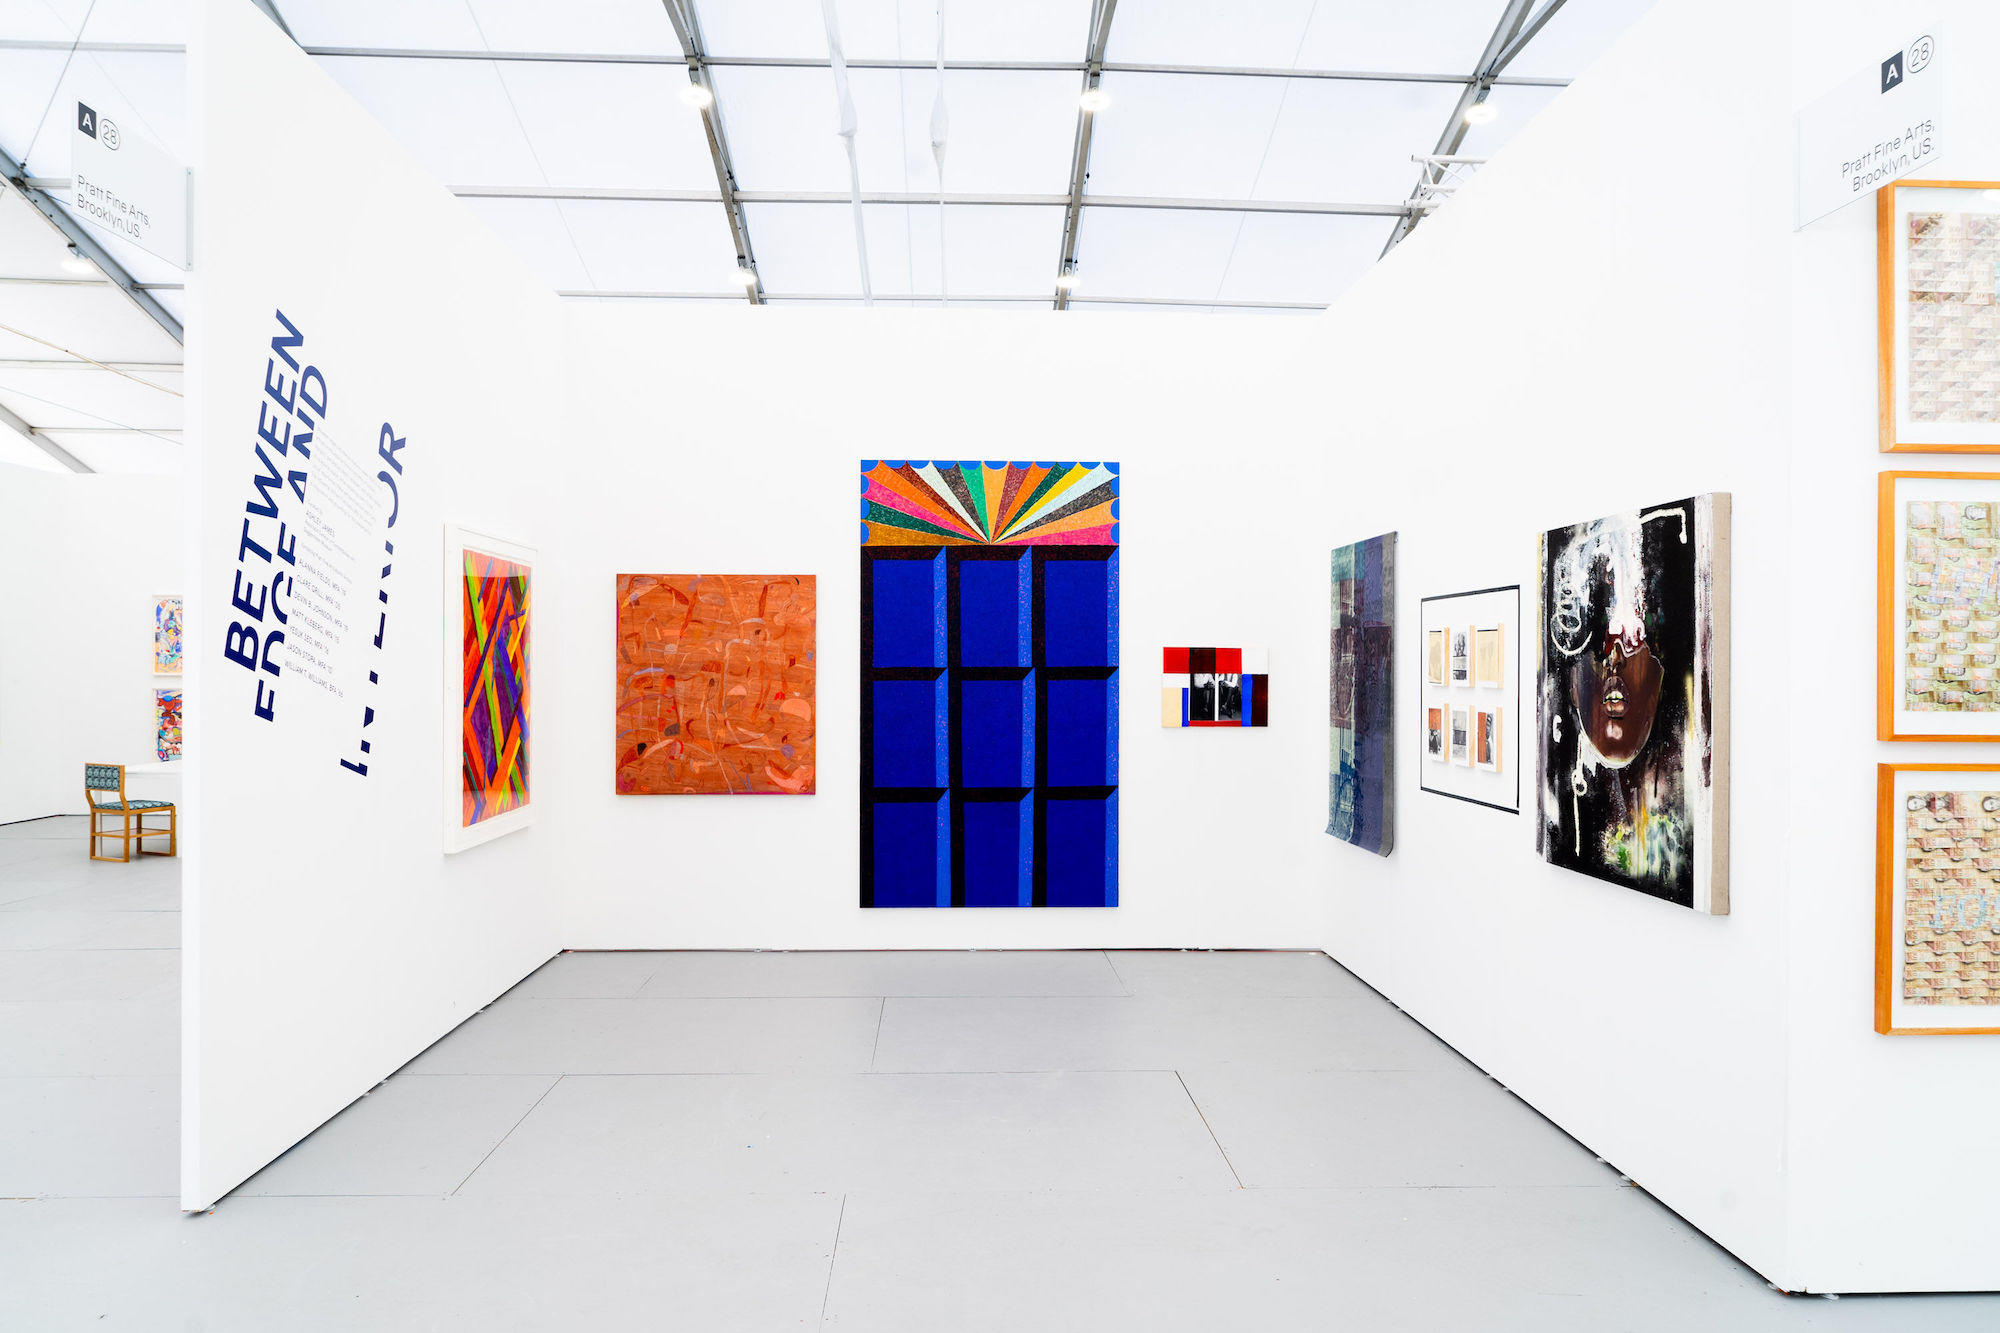 Installation view of Between edge and interior at UNTITLED, ART Miami Beach